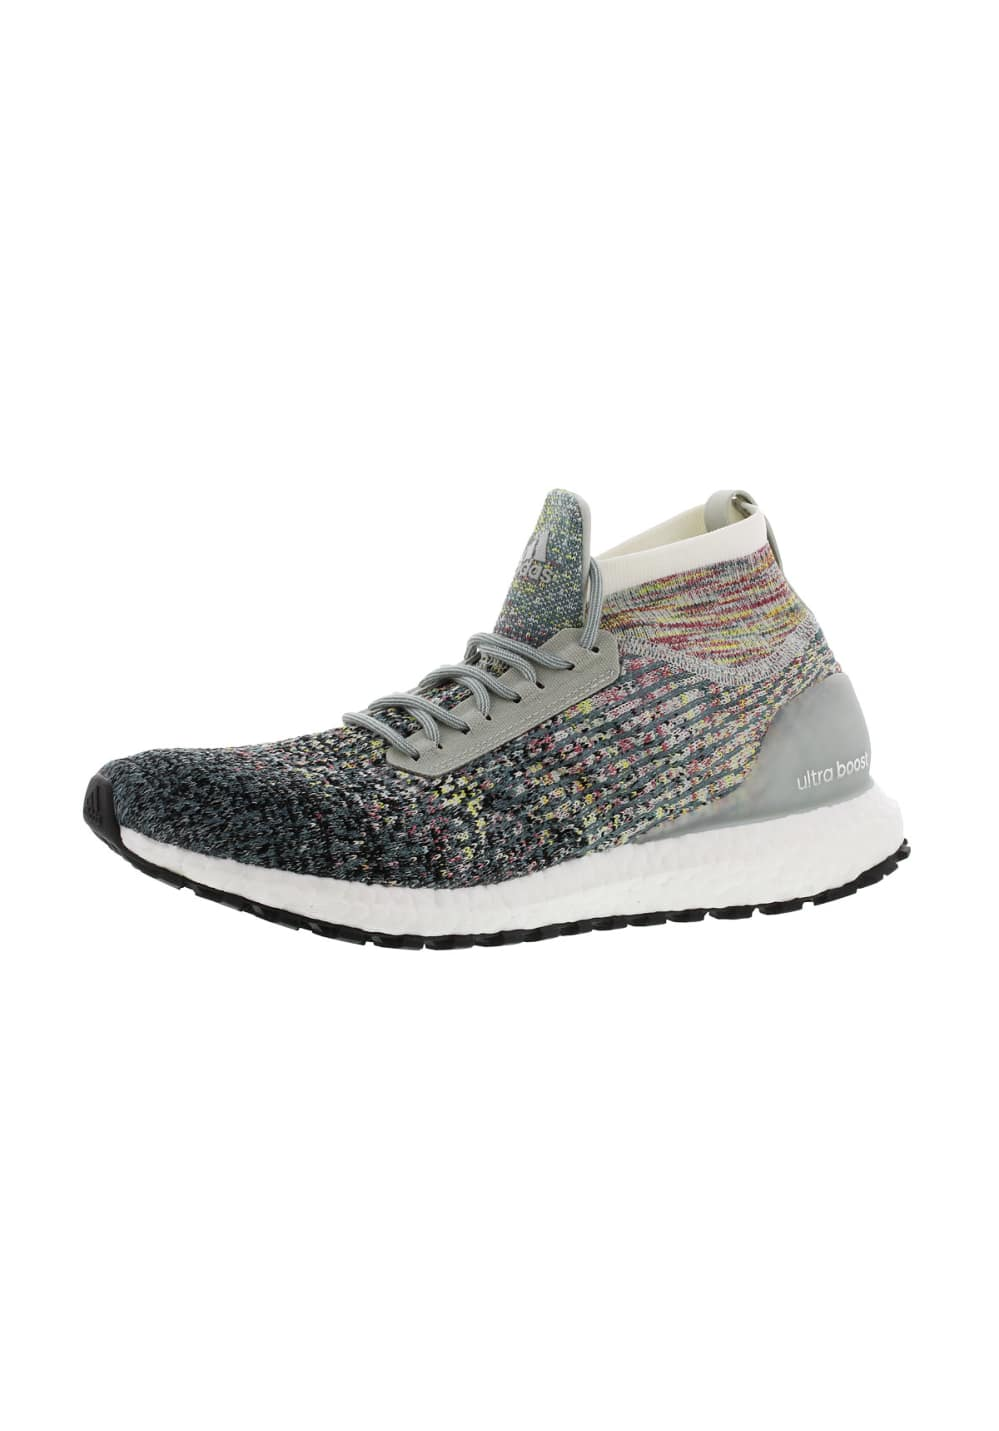 24b44f33151cb Next. -50%. This product is currently out of stock. adidas. Ultra Boost All  Terrain Ltd - Running shoes for Men